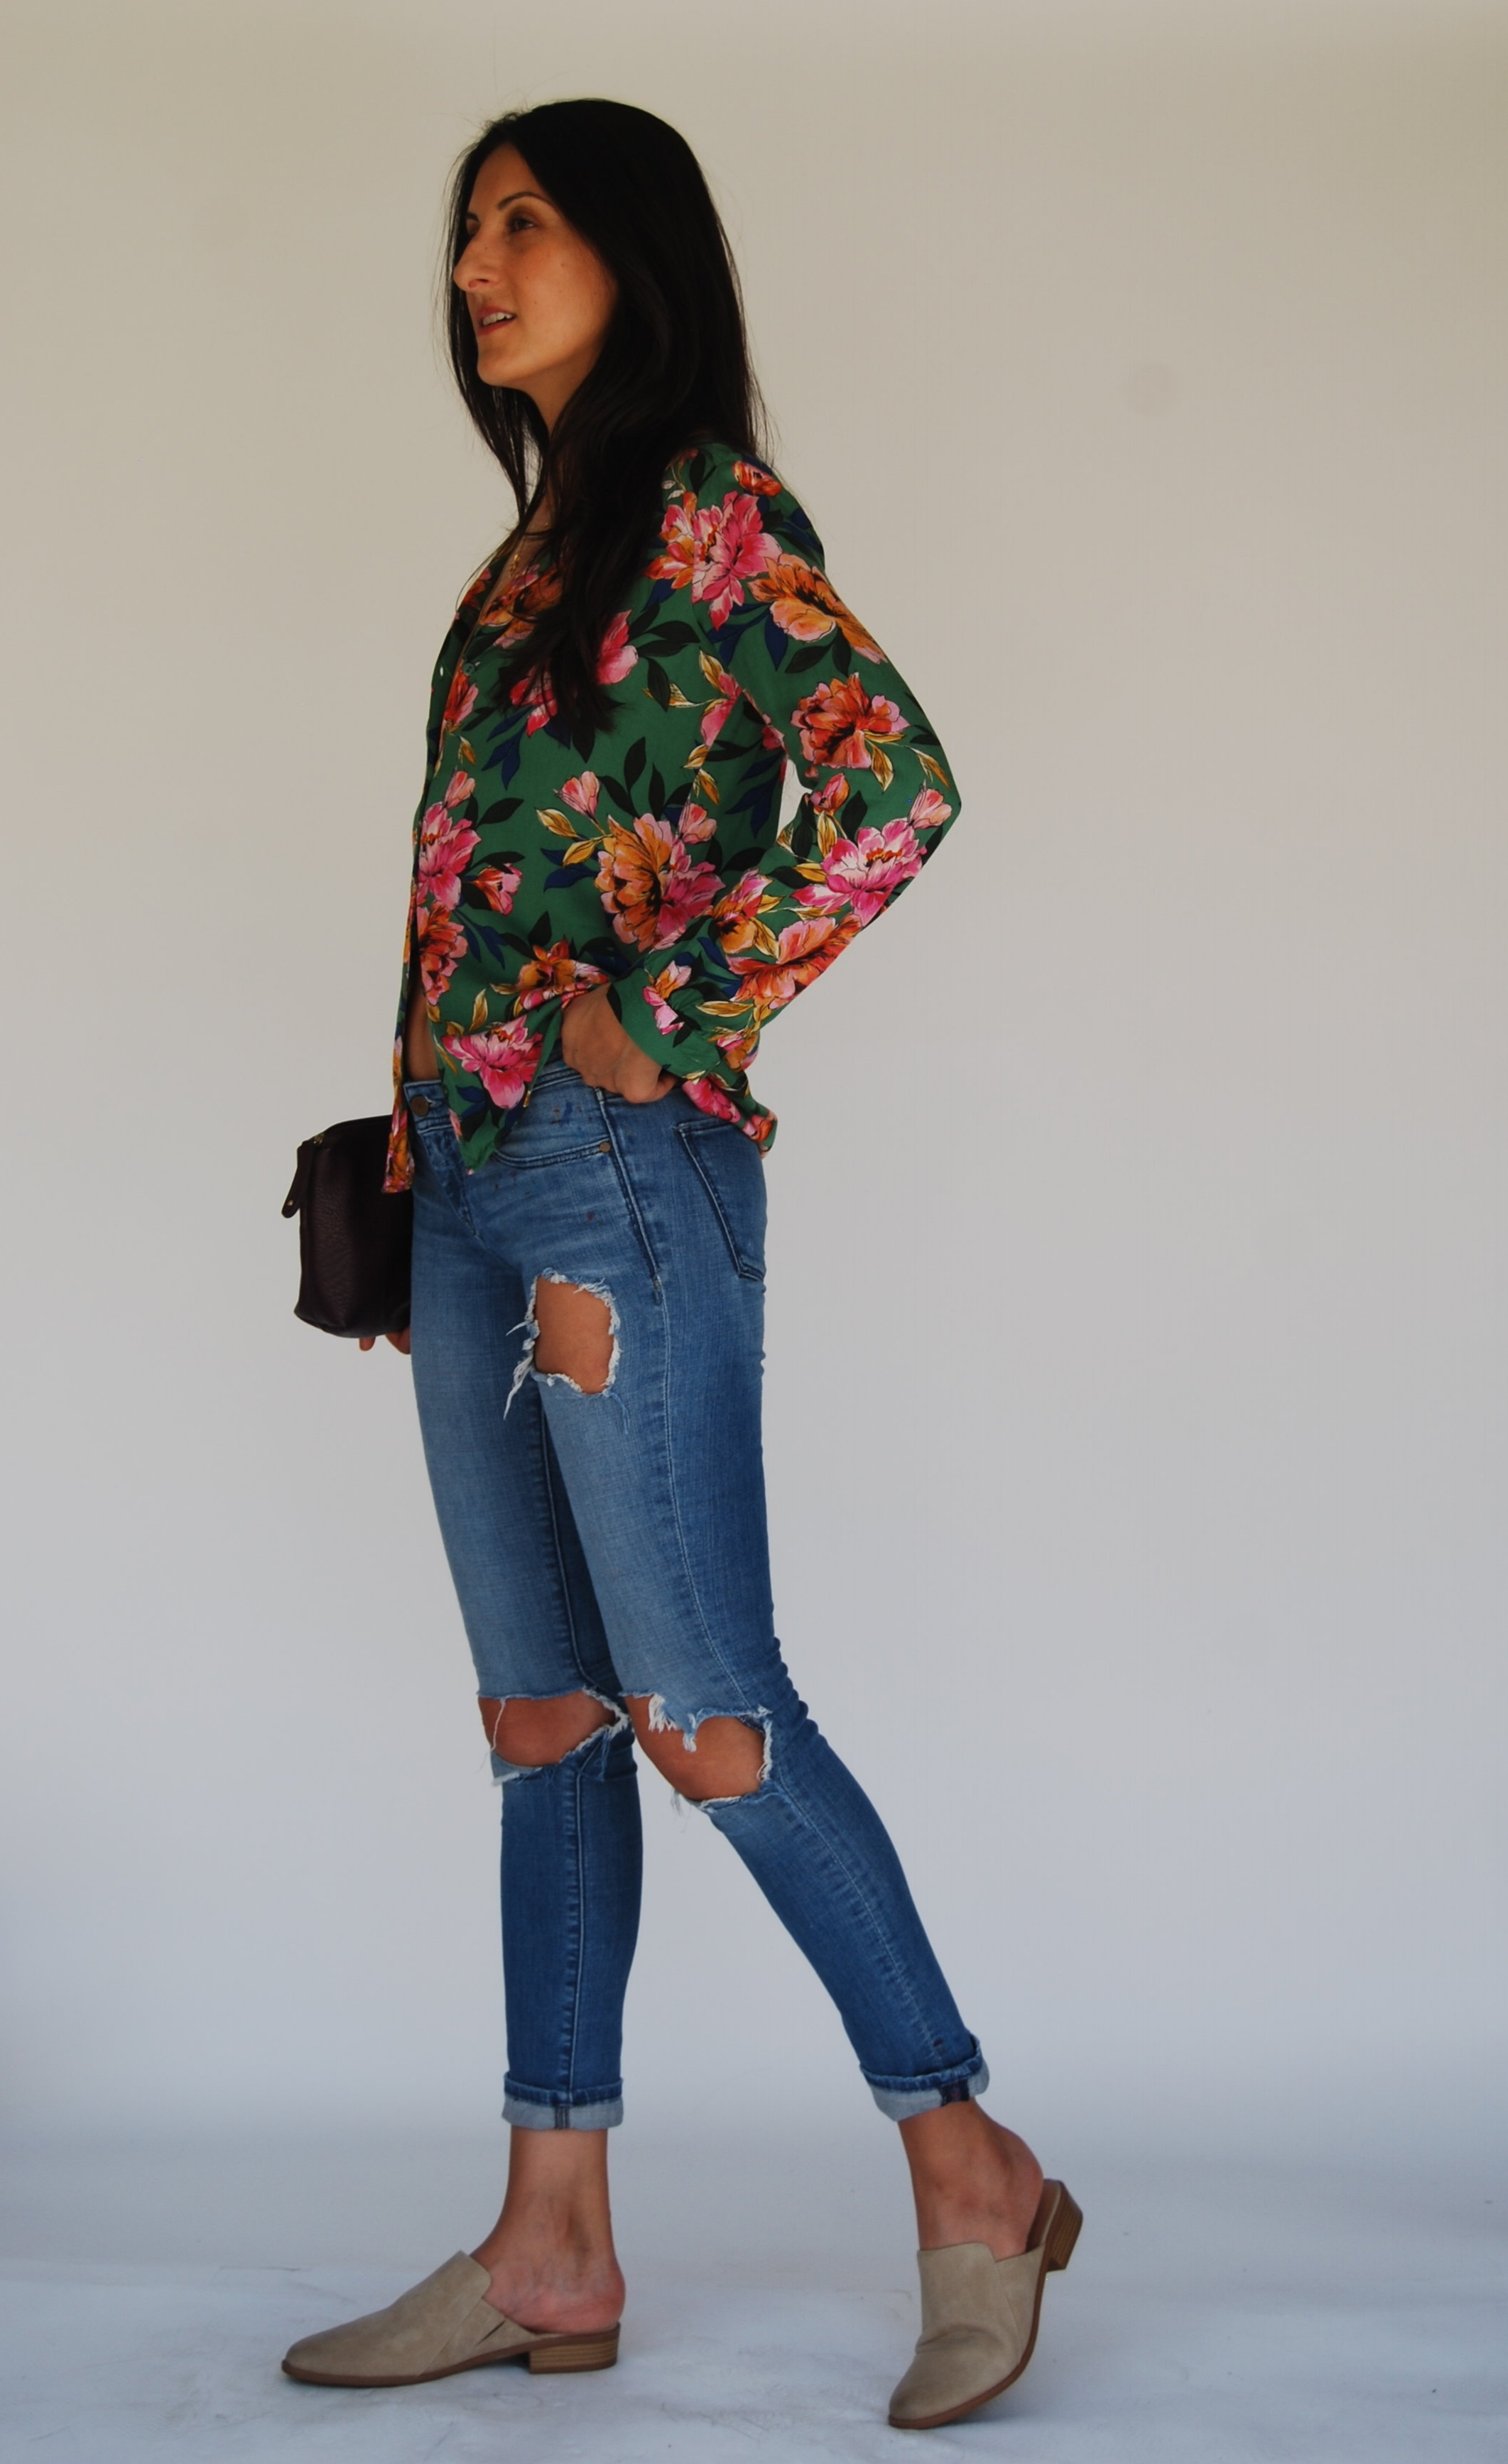 - 5. Last, but not least, my personal fave. Bright floral blouse, with distressed jeans. I'm kinda obsessed with this blouse and I love how the shoes keep it chill. This could be another date night look, or girl's night out. Totally depends on what makes you feel more comfortable.